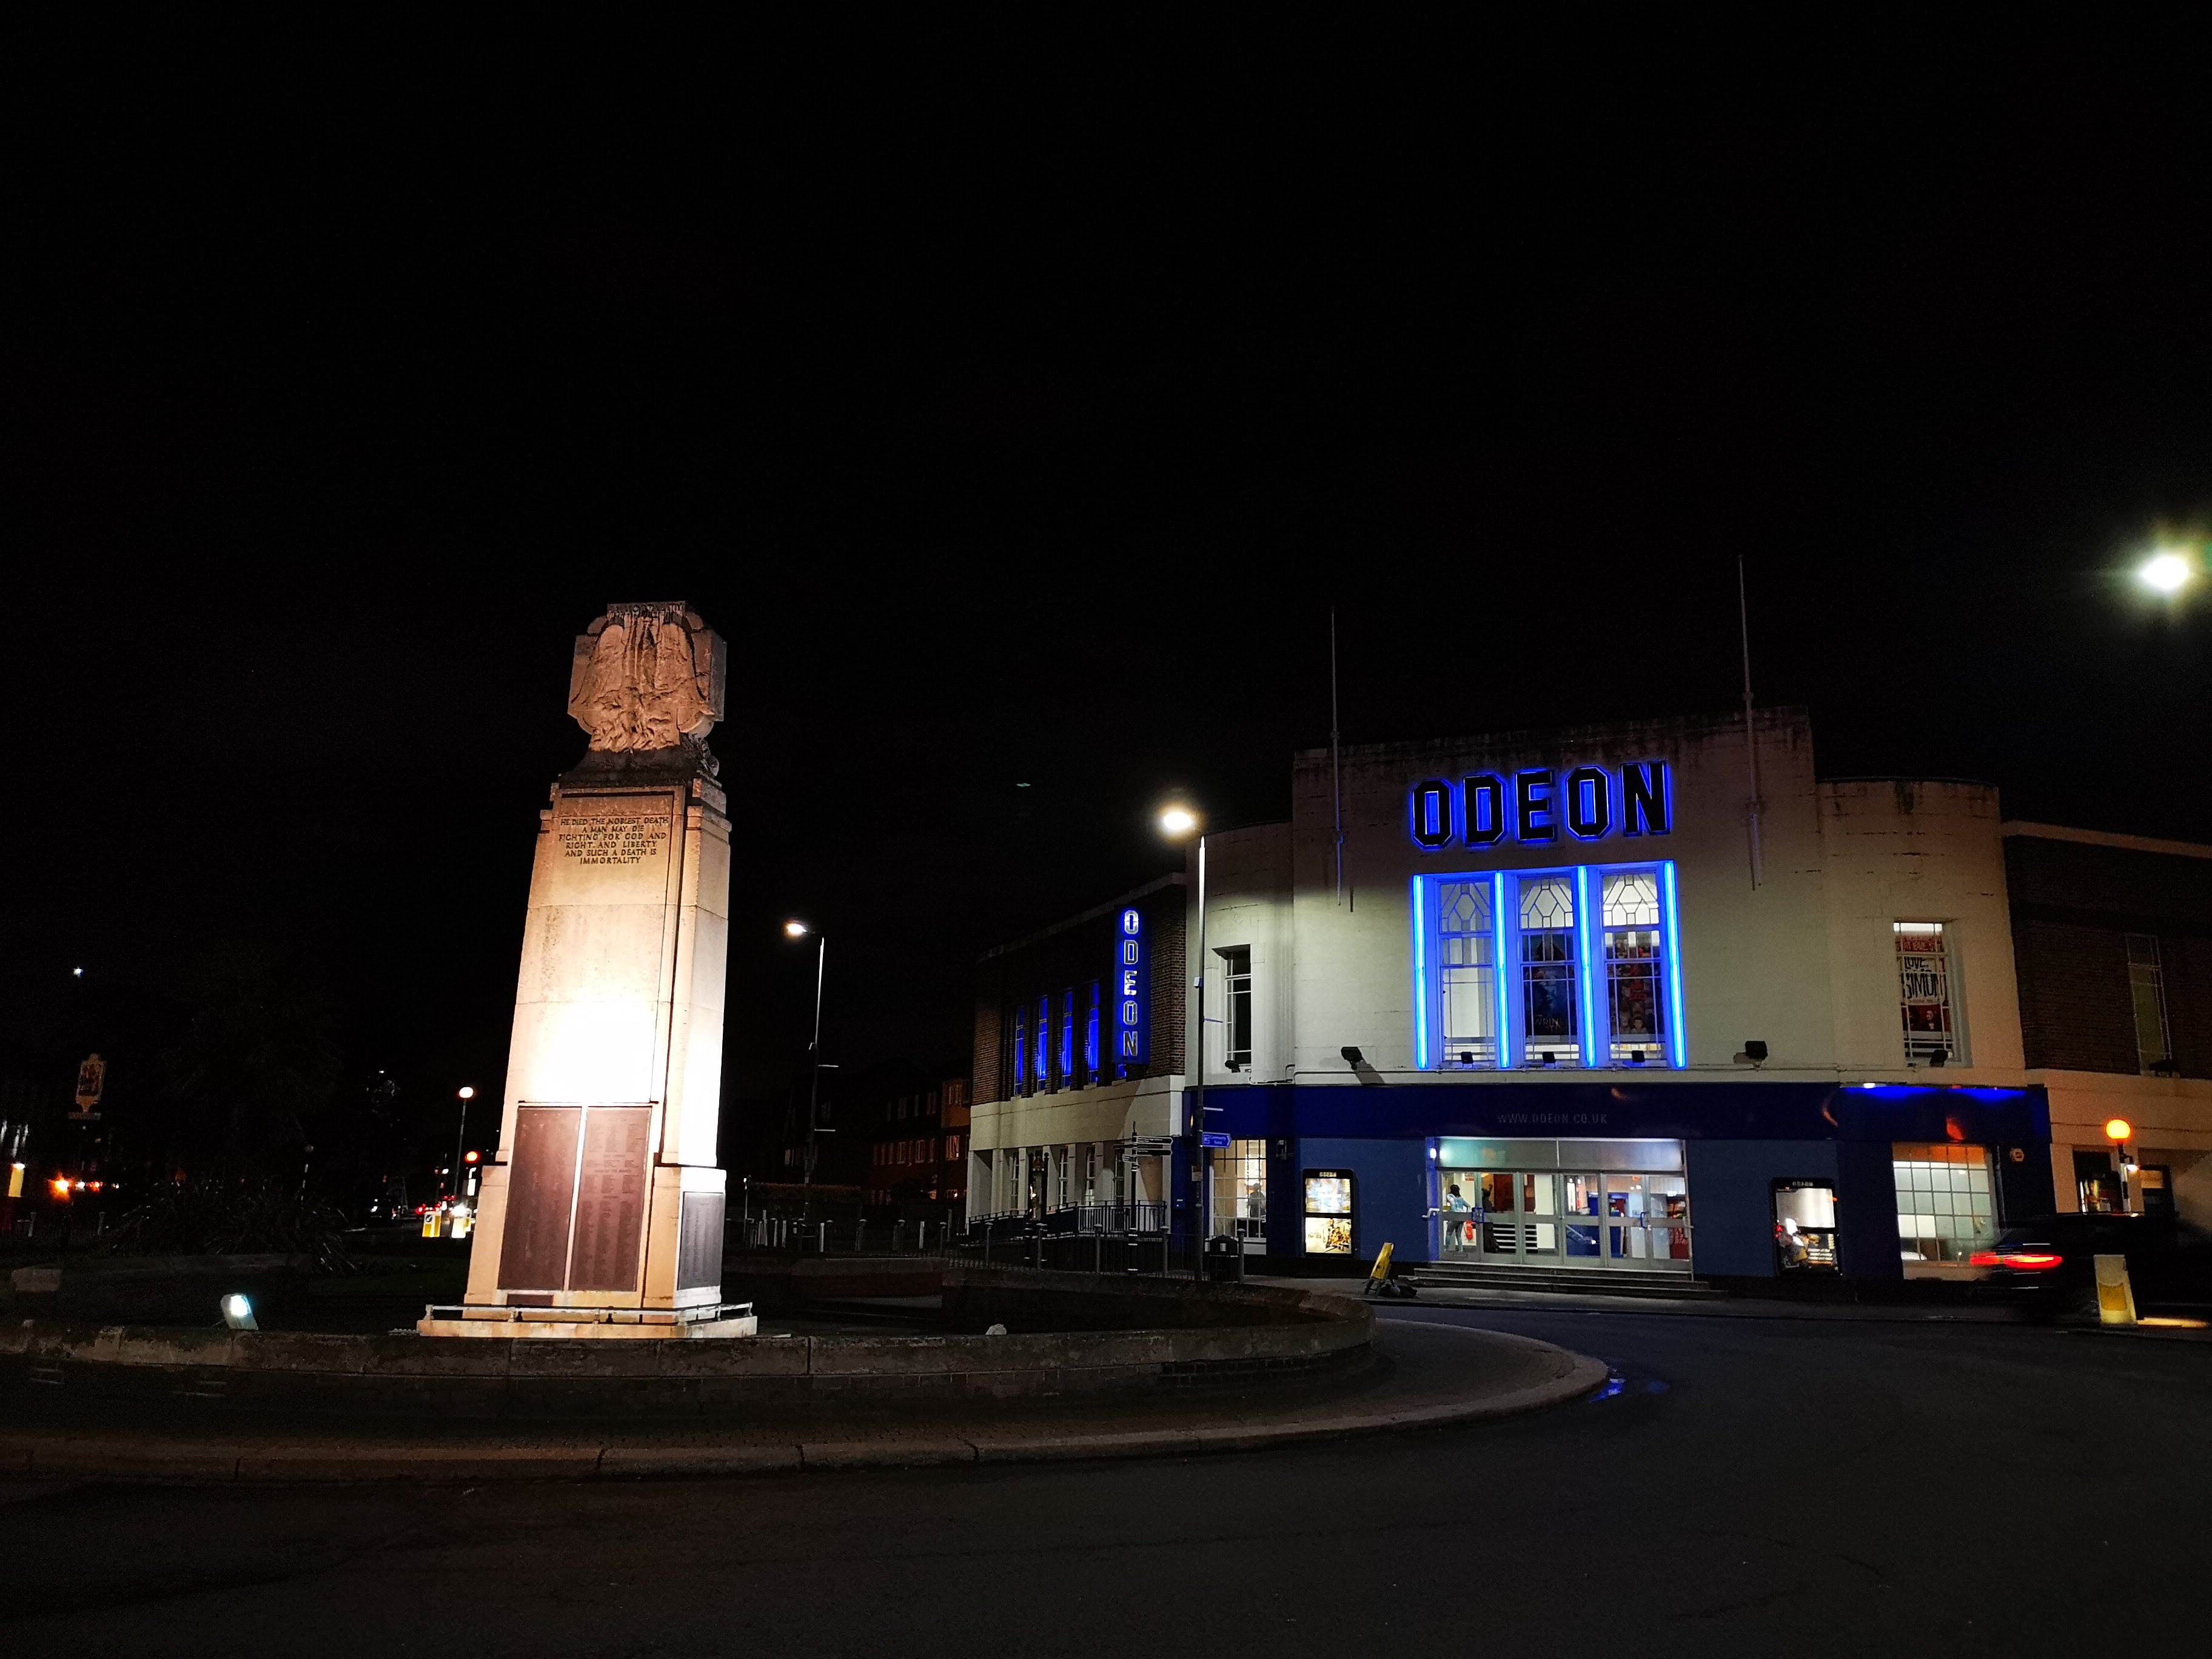 Here's a standard low-light shot of an Odeon cinema. It's reasonably sharp but doesn't obviously beat the best-in-class rivals.